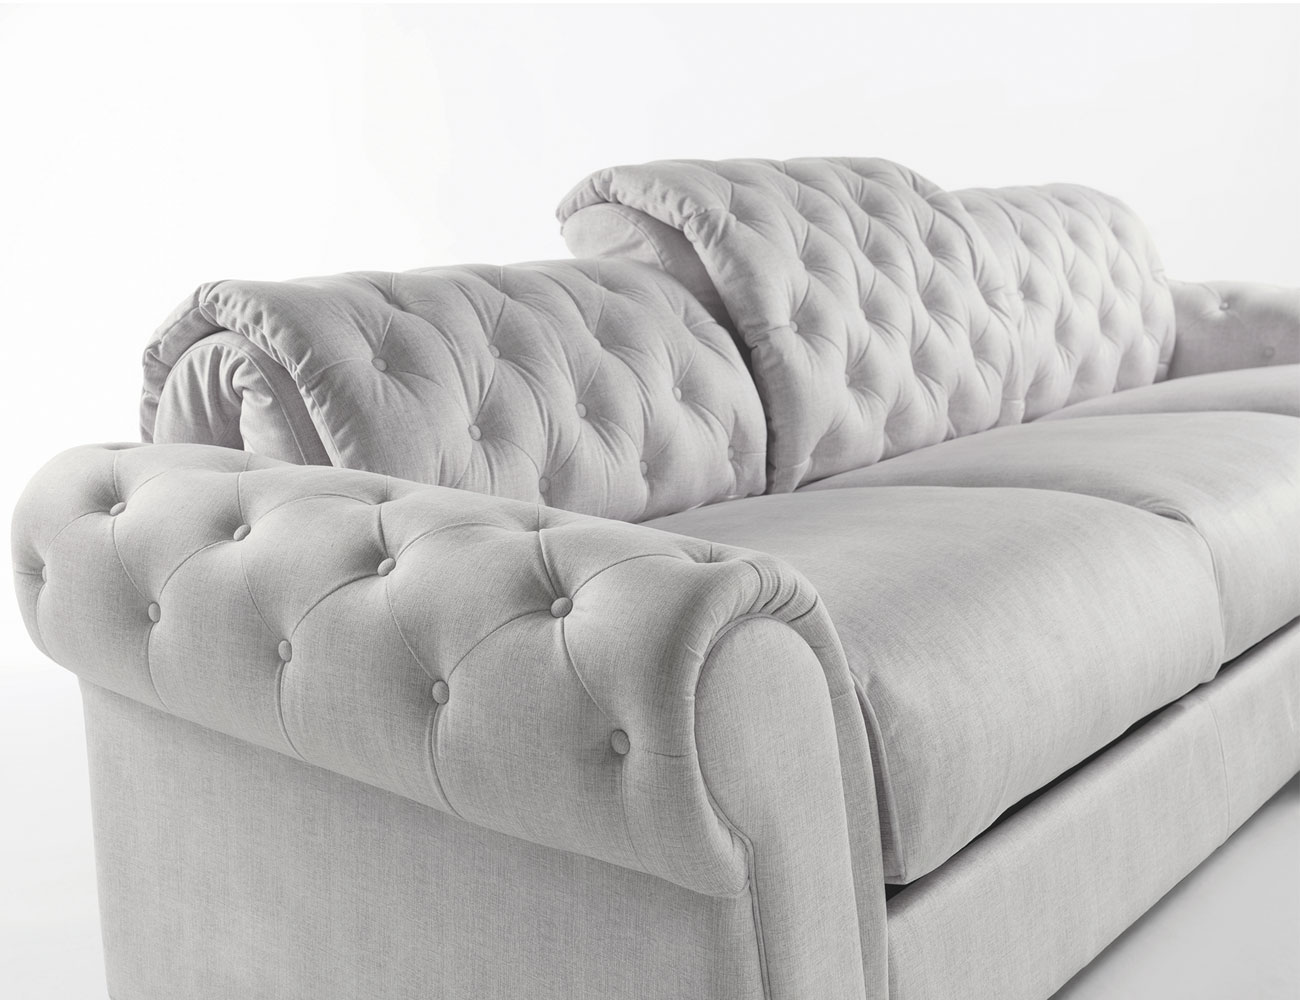 Sofa chaiselongue gran lujo decorativo capitone blanco tela 113